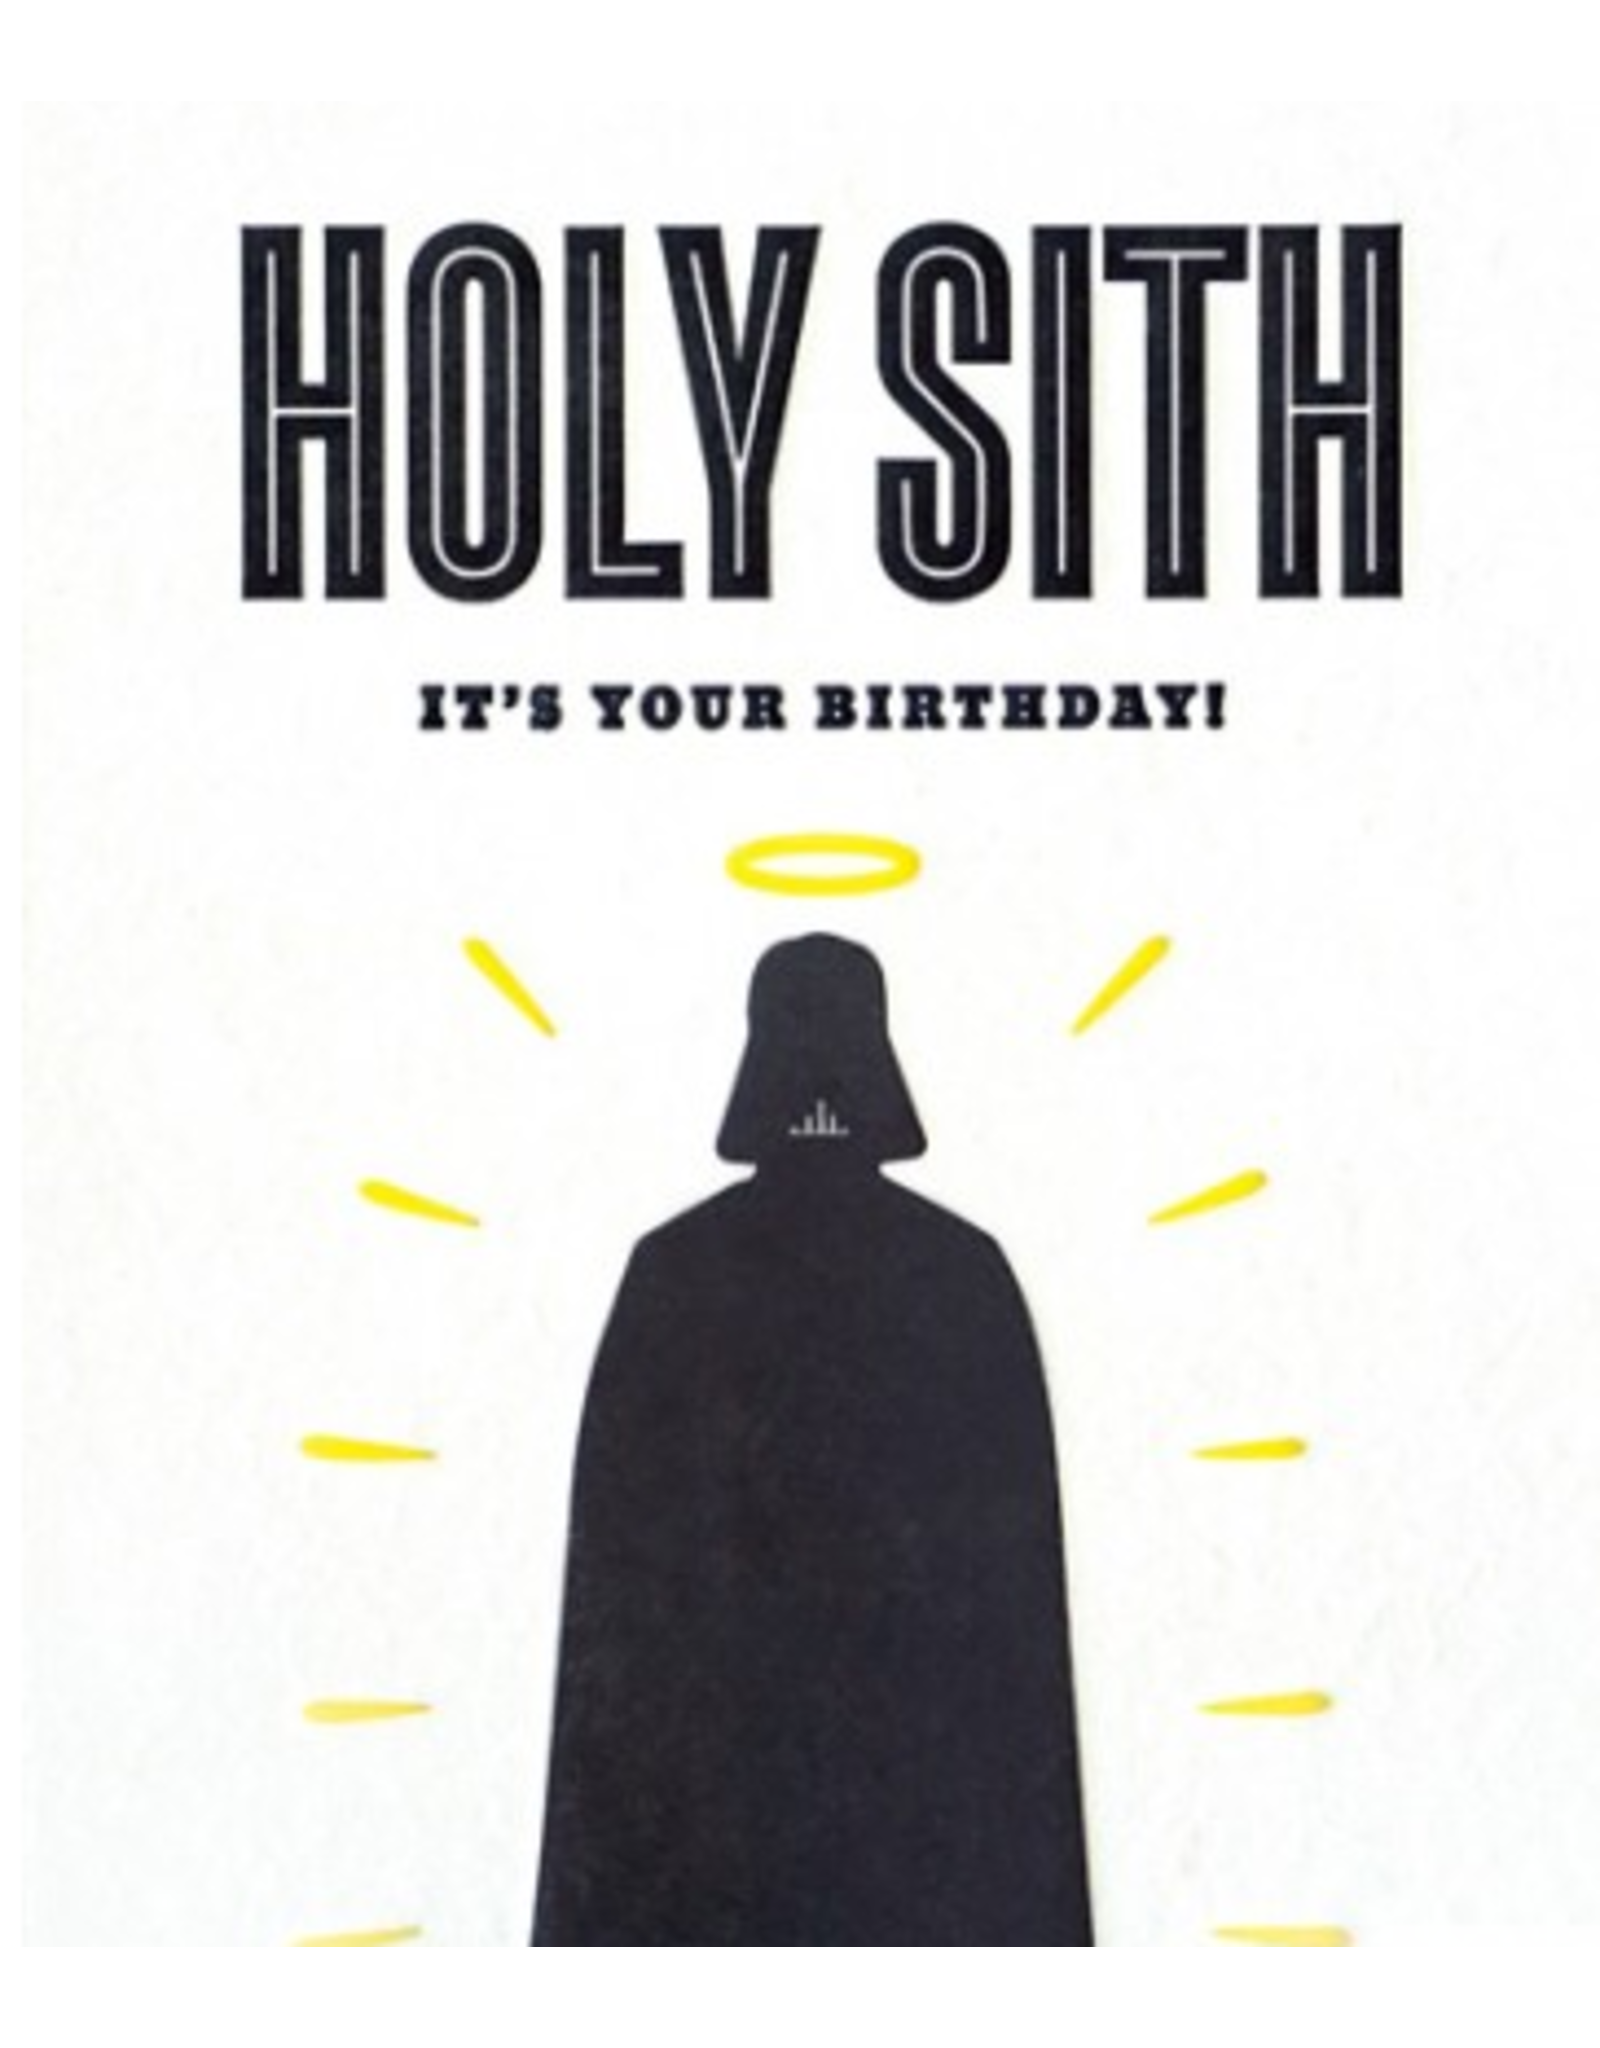 Holy Sith Birthday Greeting  Card, Philippines